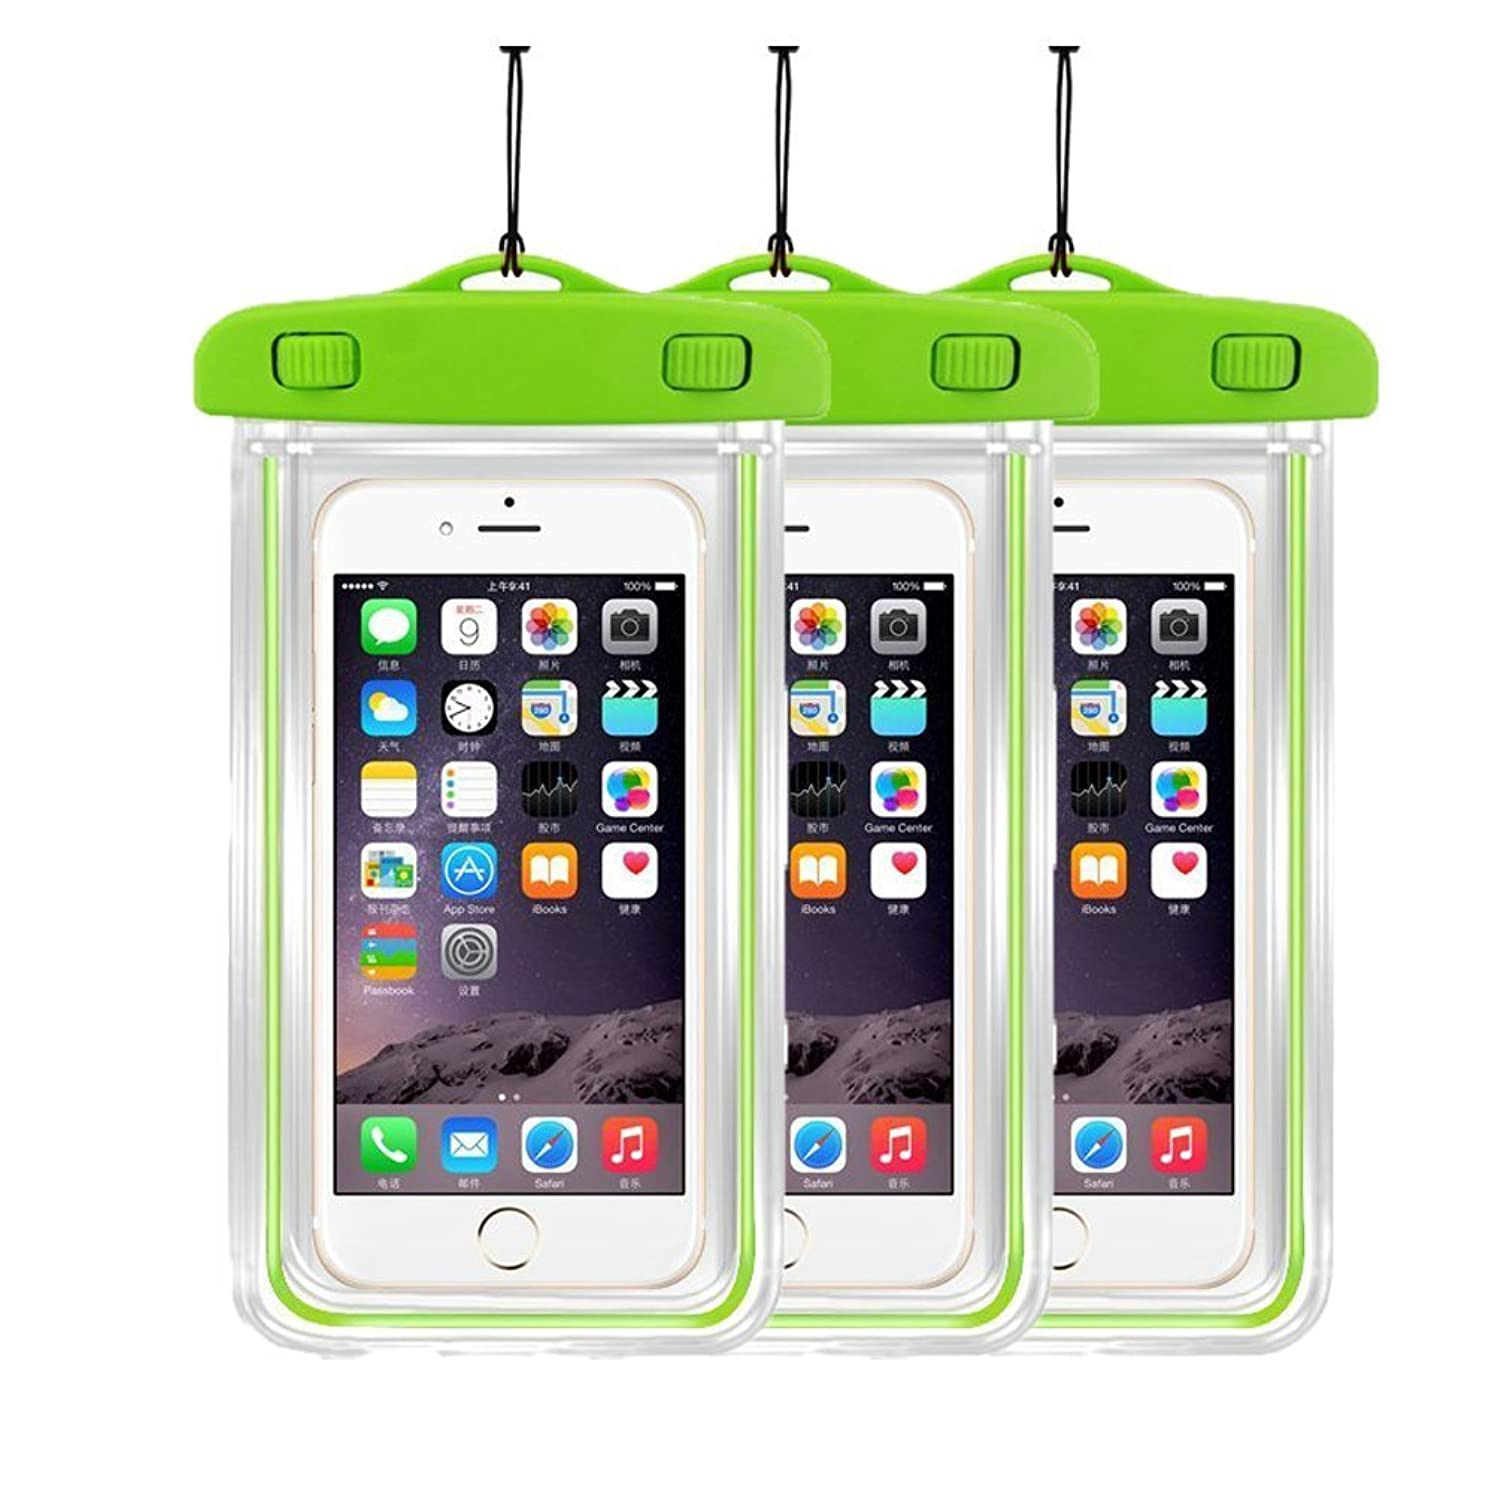 [3PacK] Waterproof Case Universal CellPhone Dry Bag Pouch CaseHQ for Apple iPhone 8,8plus,7,7PLUS 6S, 6, 6S Plus, SE, 5S, Samsung Galaxy S8 ,S8plus, S7, S6 ,LG Sony Nokia Motorola up to 5.8